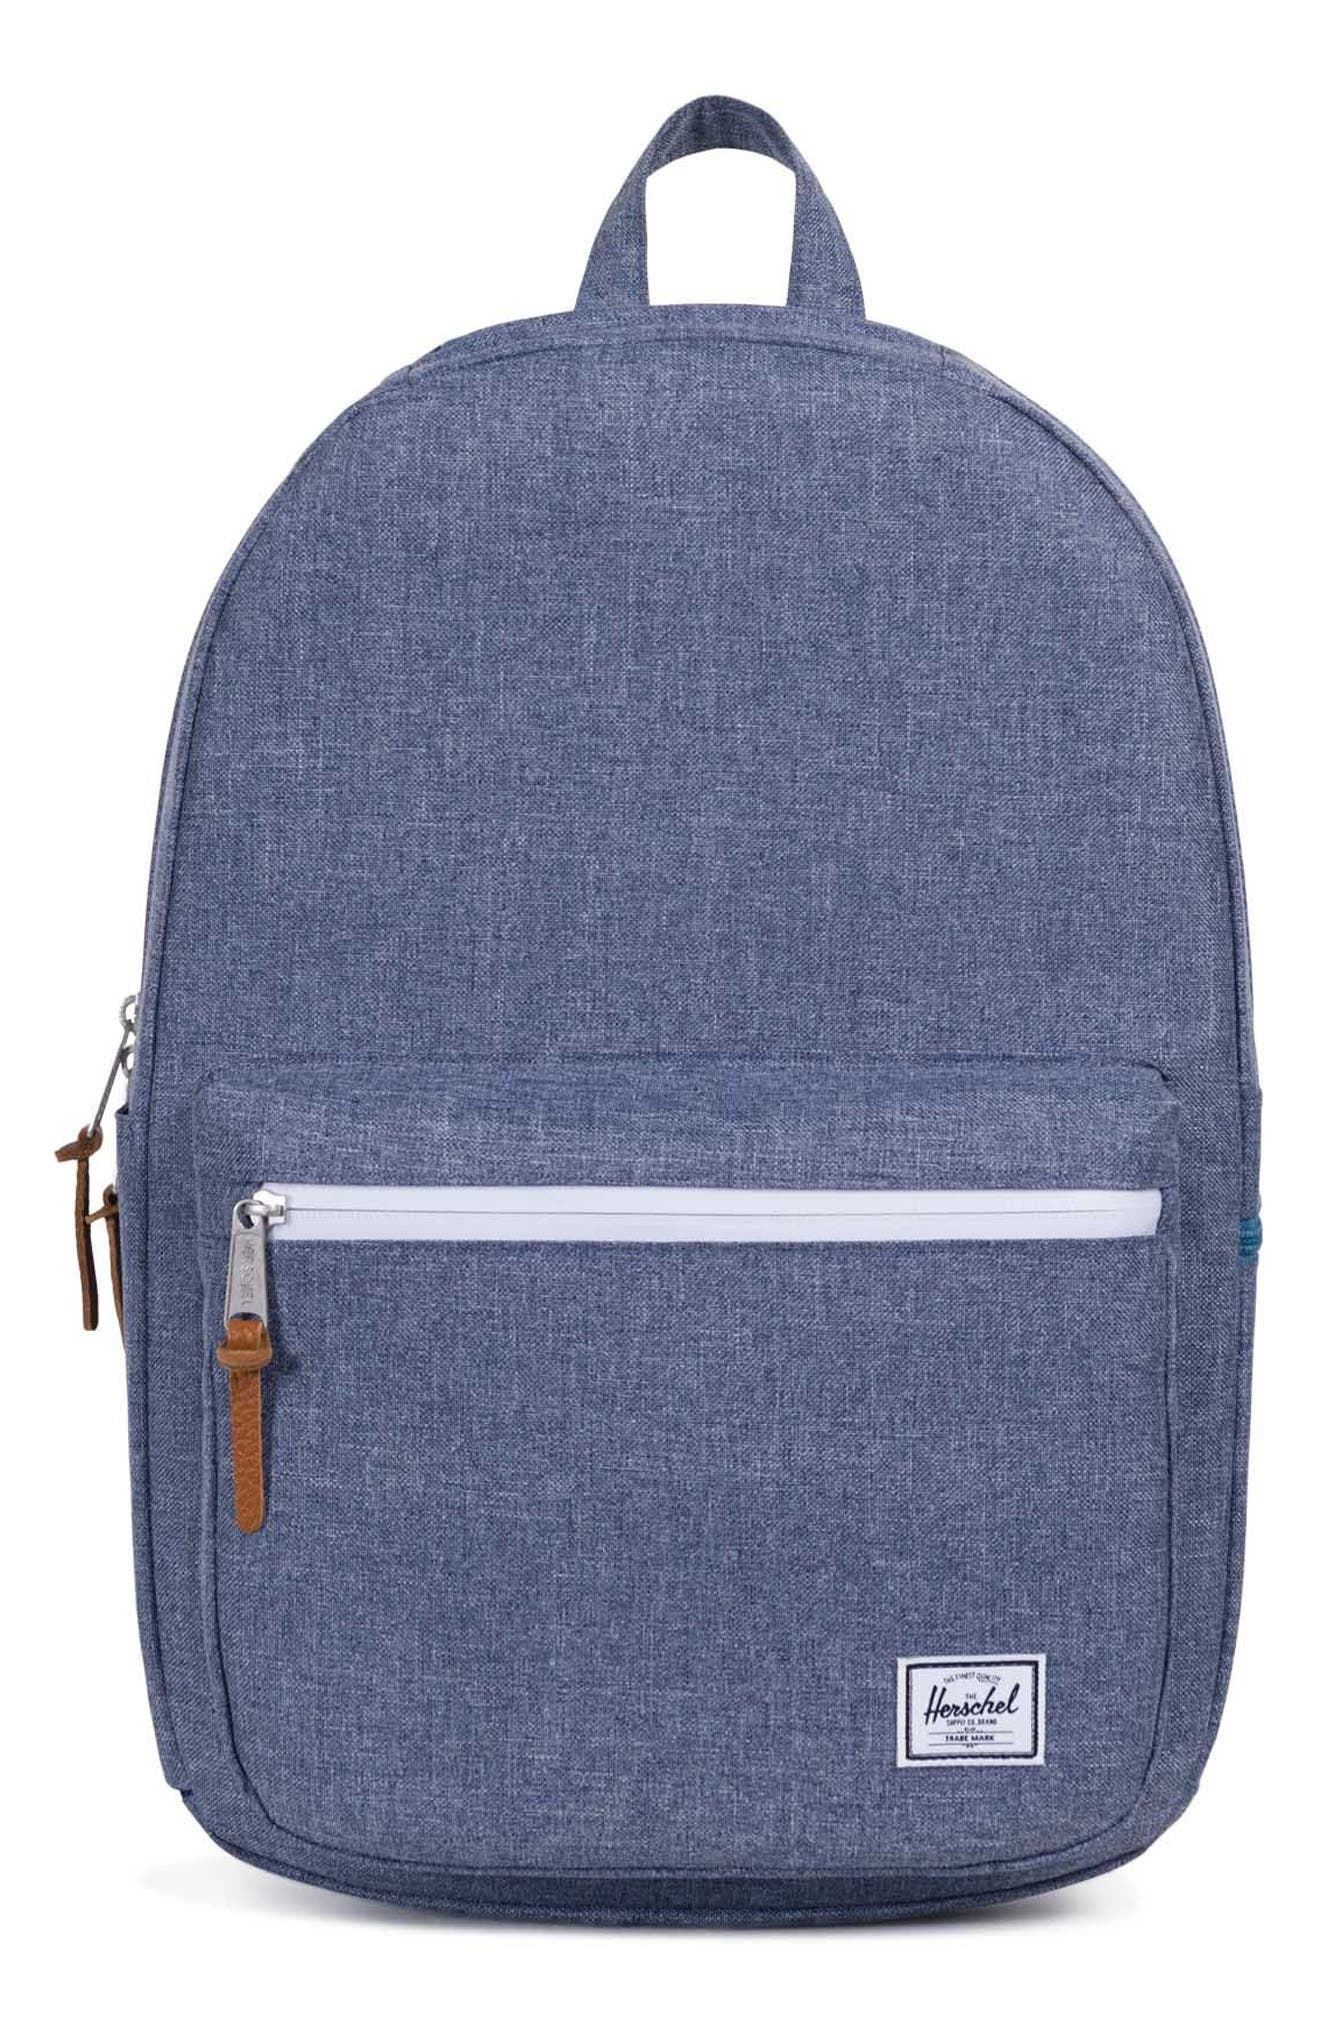 Harrison Backpack,                         Main,                         color, Dark Chambray Crosshatch